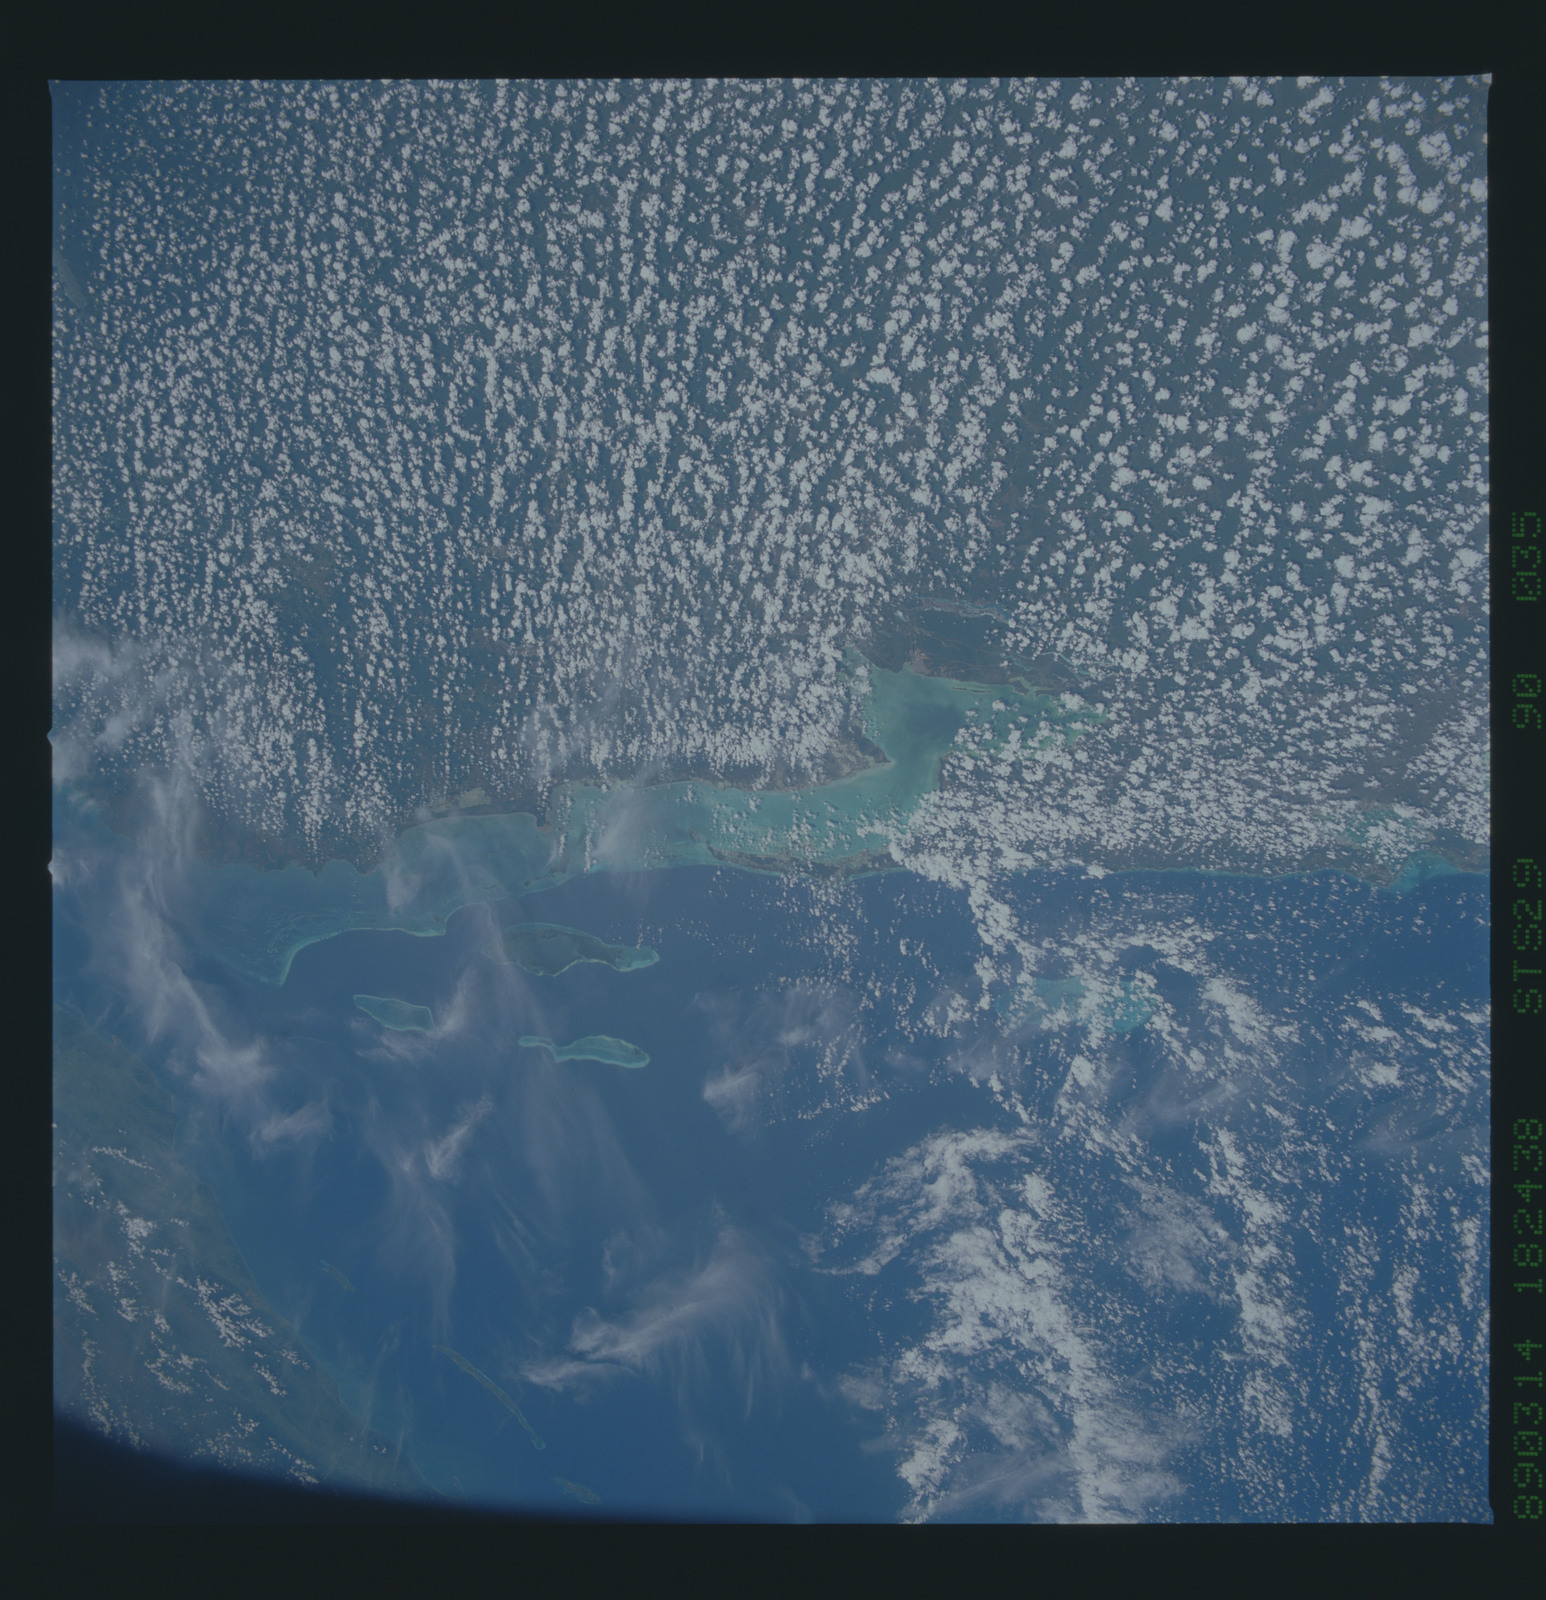 S29-90-035 - STS-029 - STS-29 earth observations